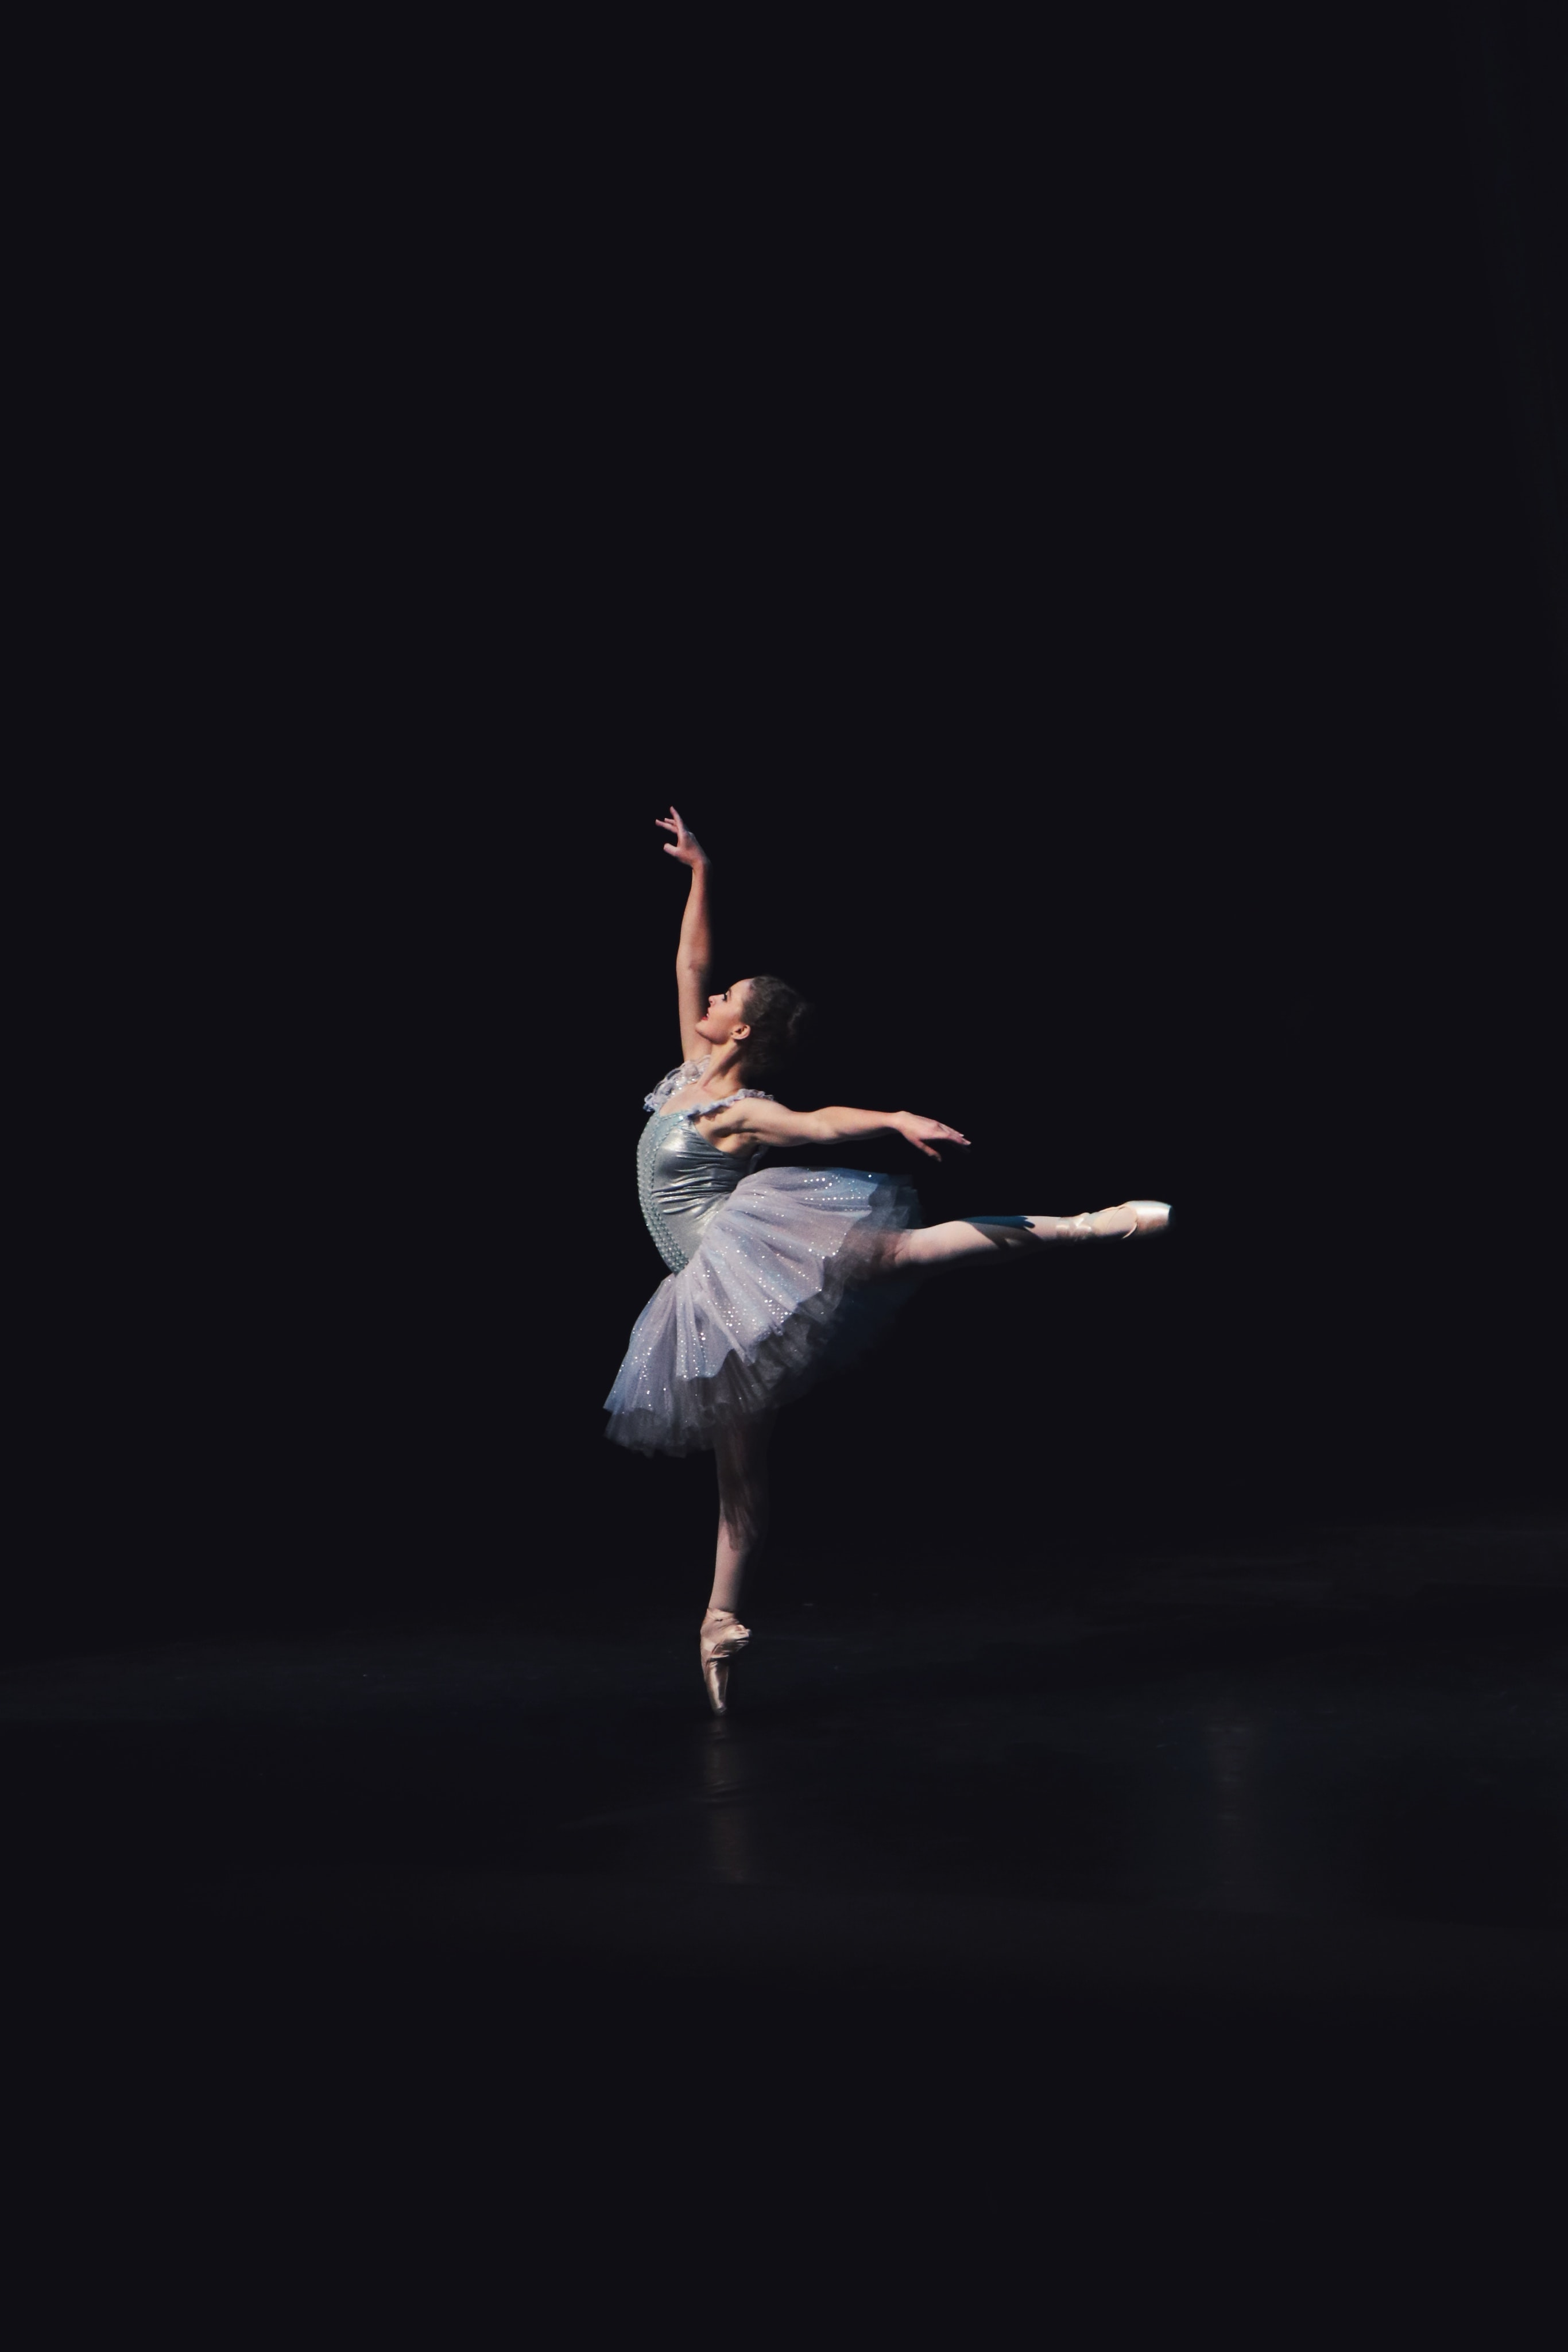 Sample Images for Dance Photography Challenge